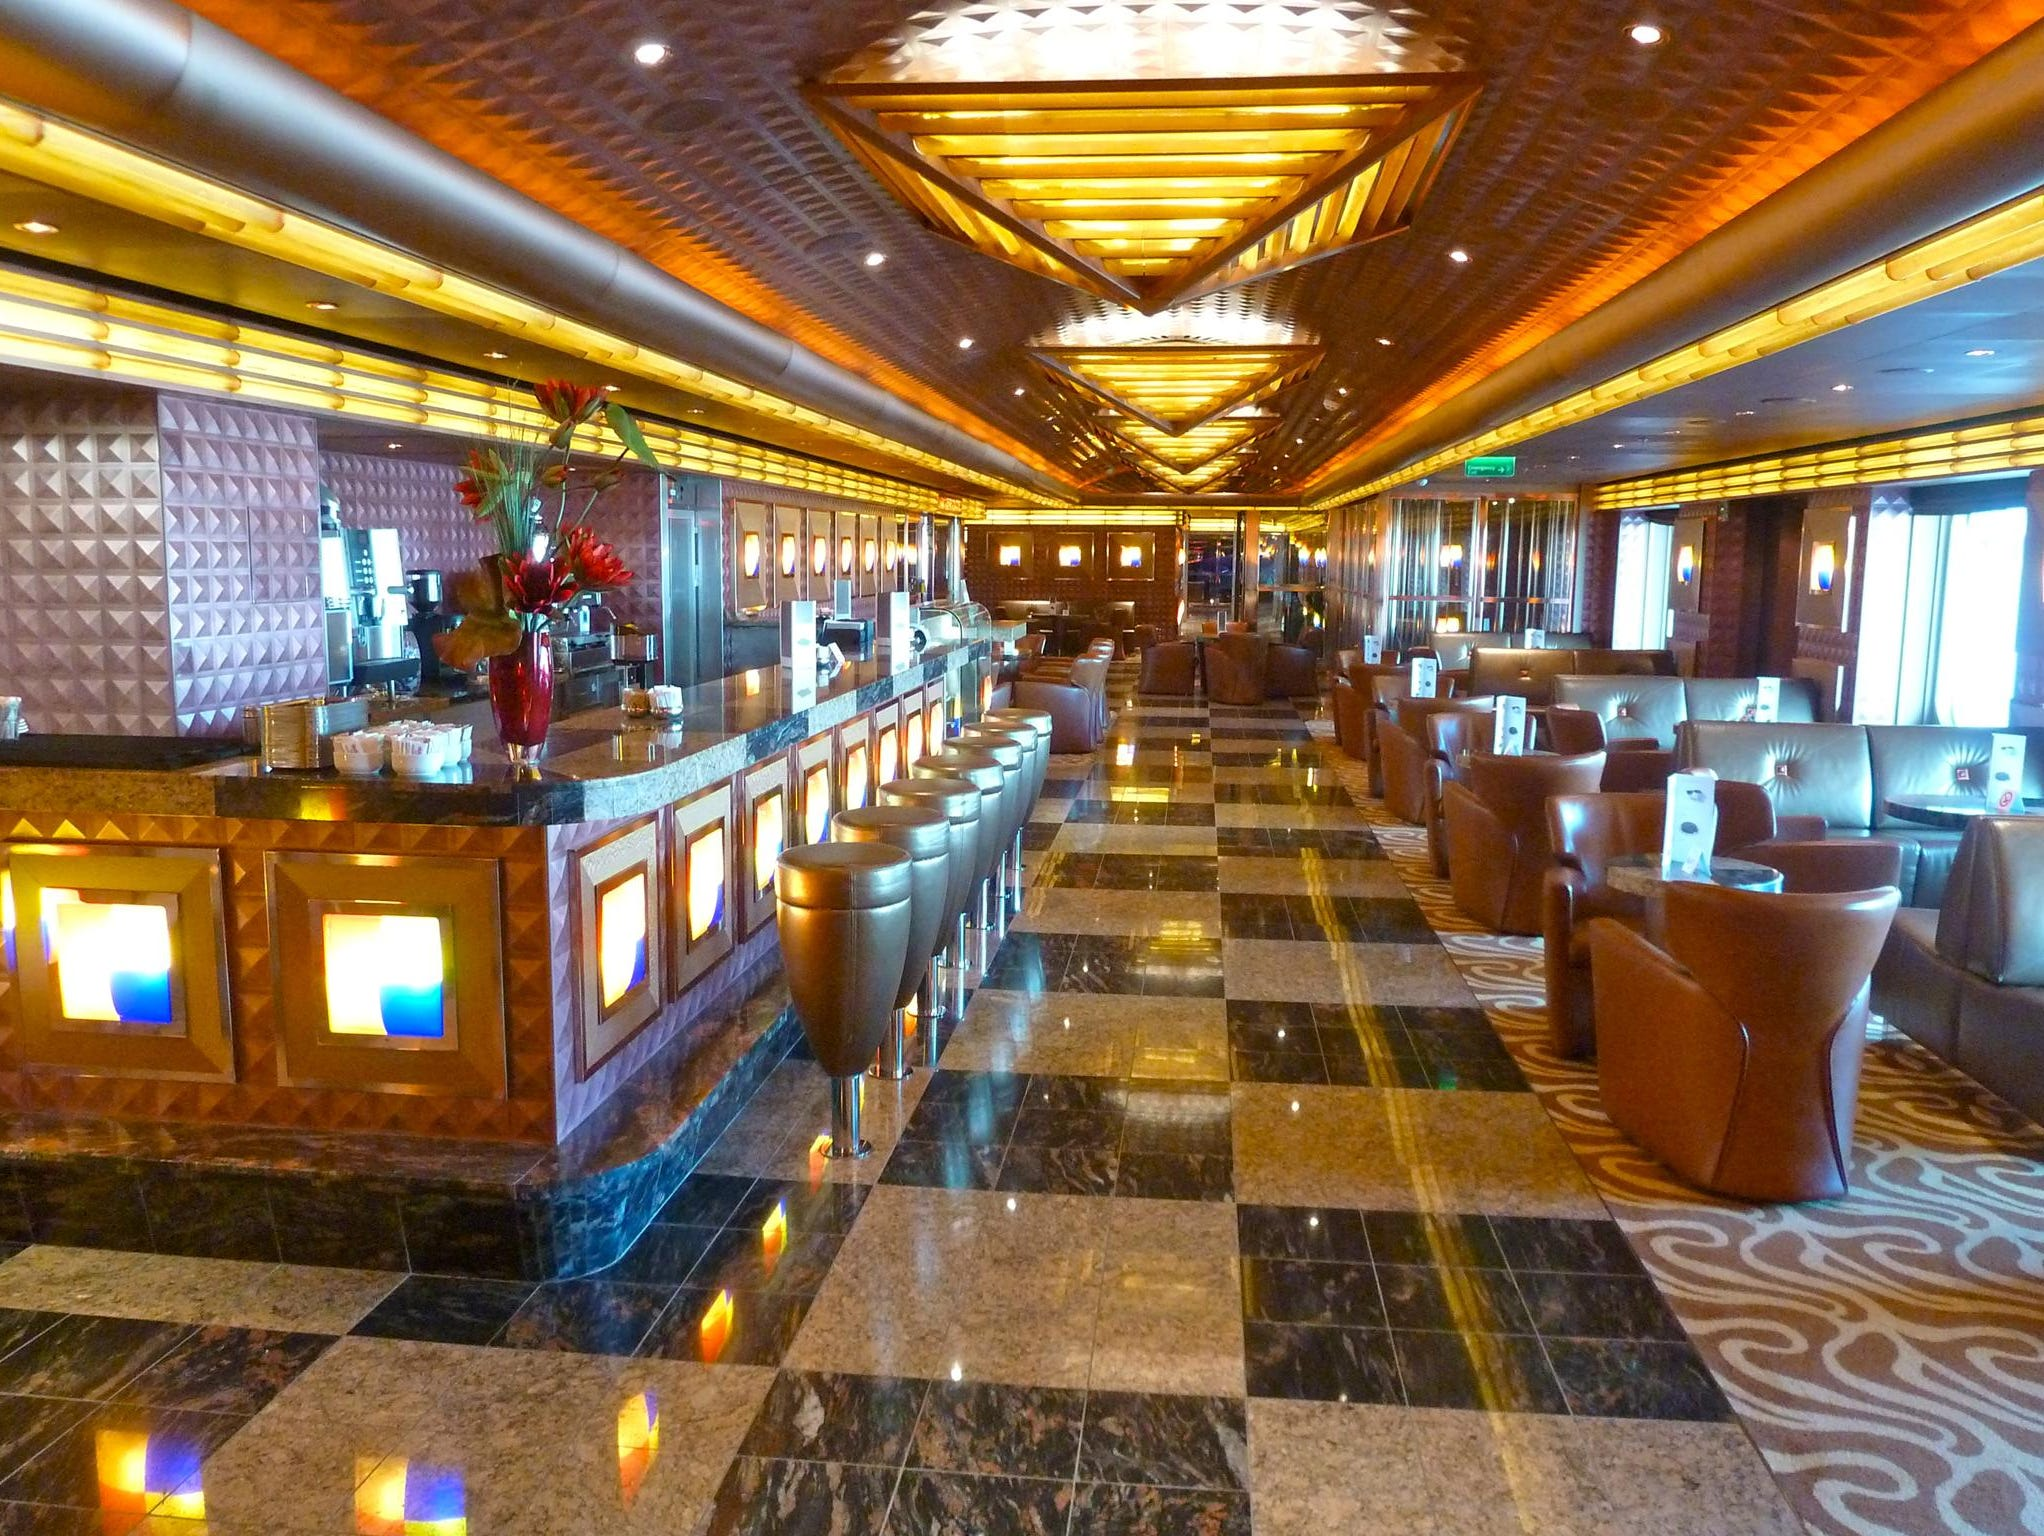 Adjoining the Piano Bar, the gallery-style Caffeteria Sugar is an attractive specialty coffee, chocolate and drinks bar on the starboard side of Azalea Deck.